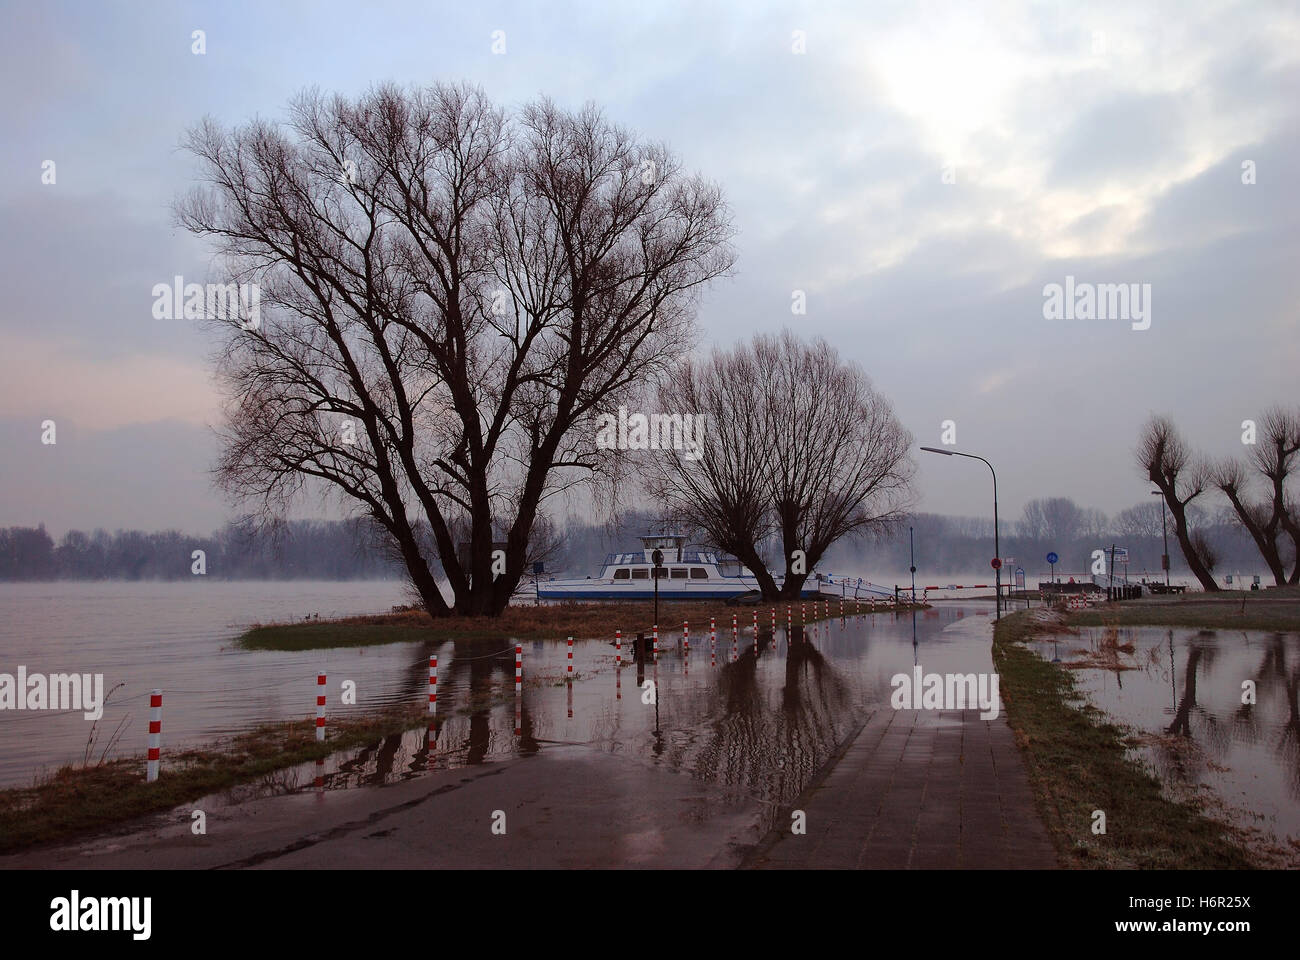 flooding on the lower rhine - Stock Image